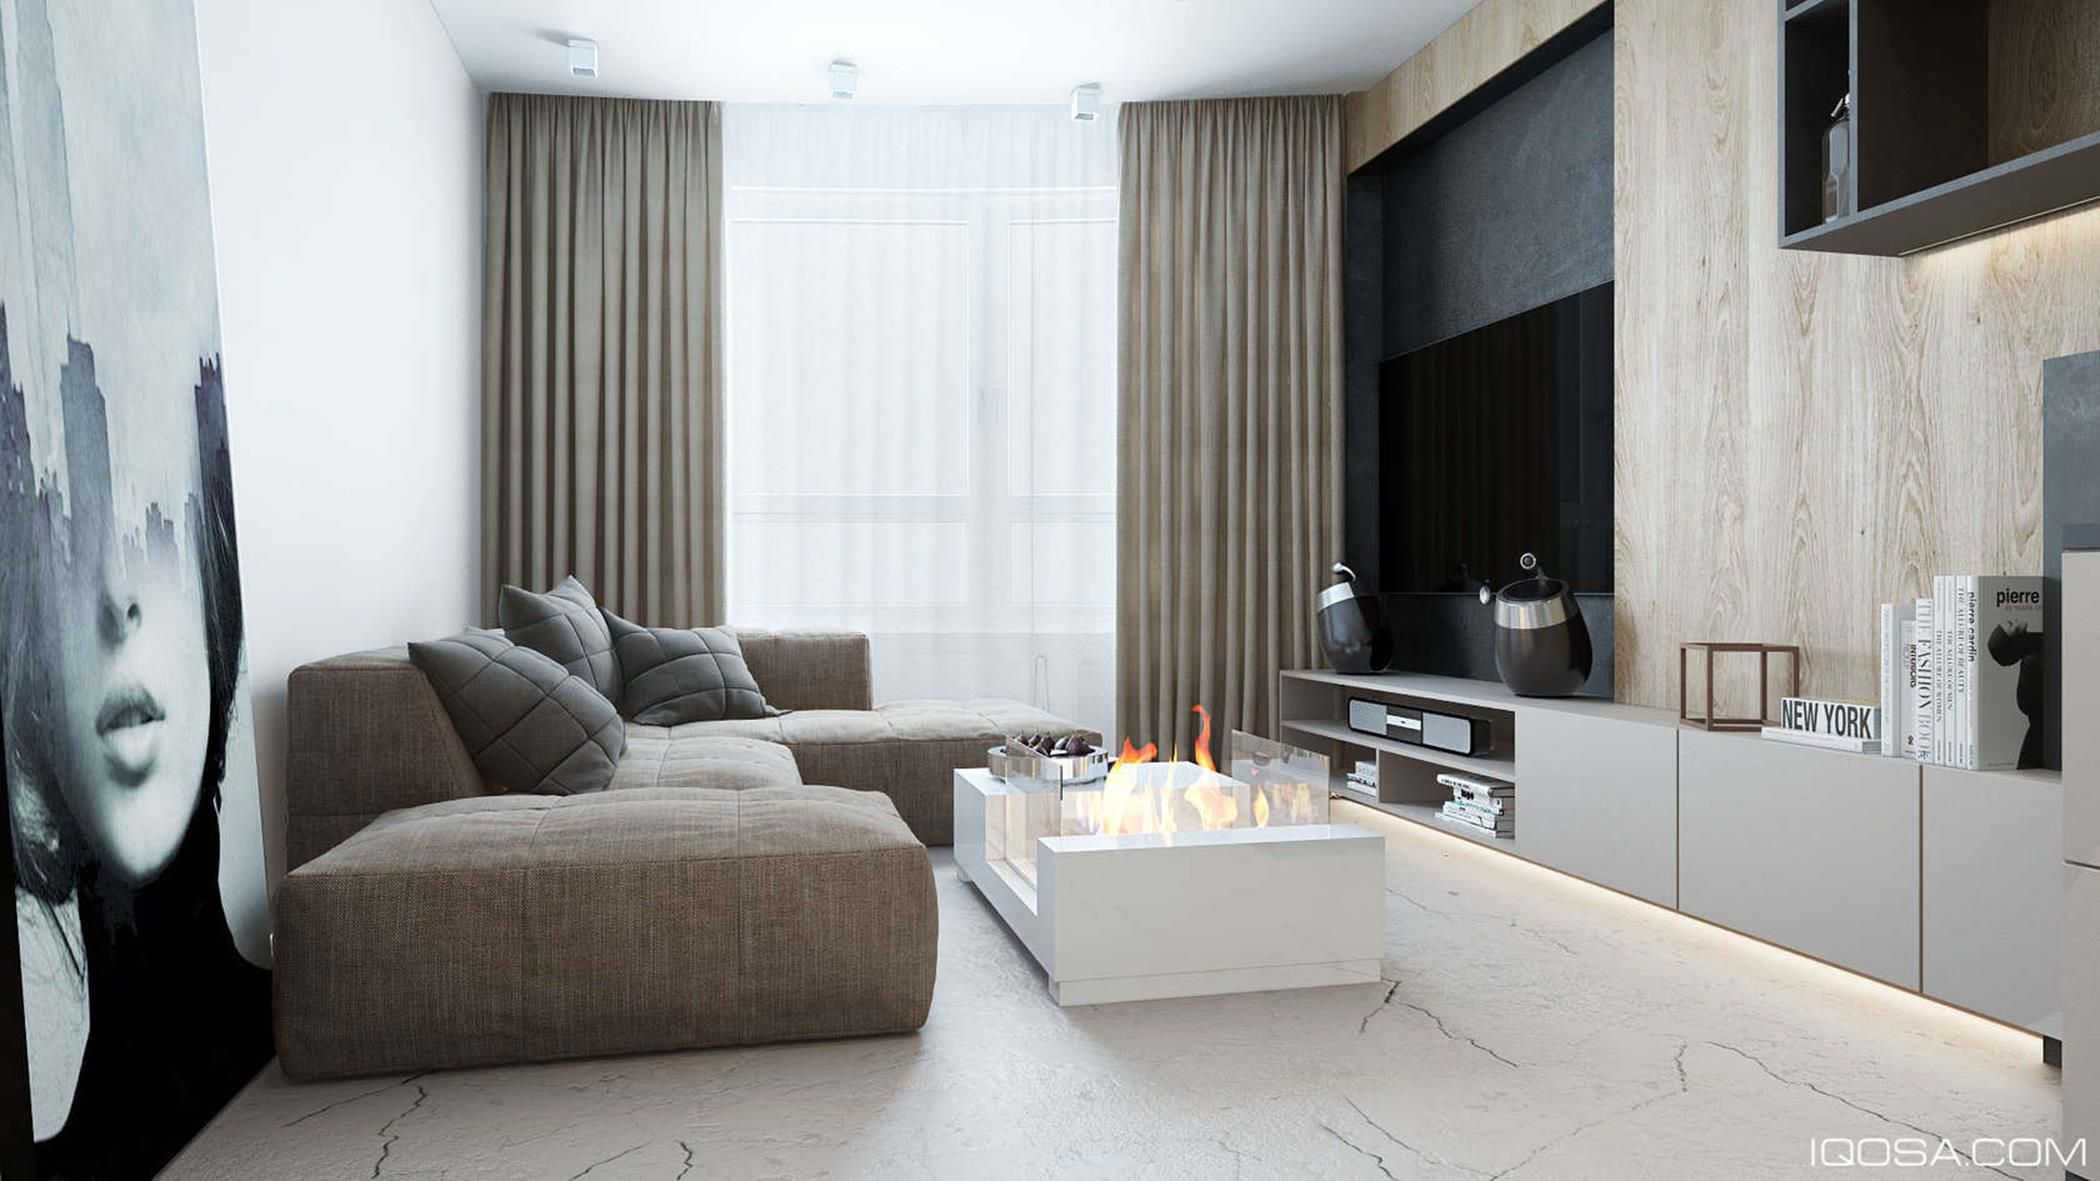 Luxury Apartment Interior Design Ideas 19